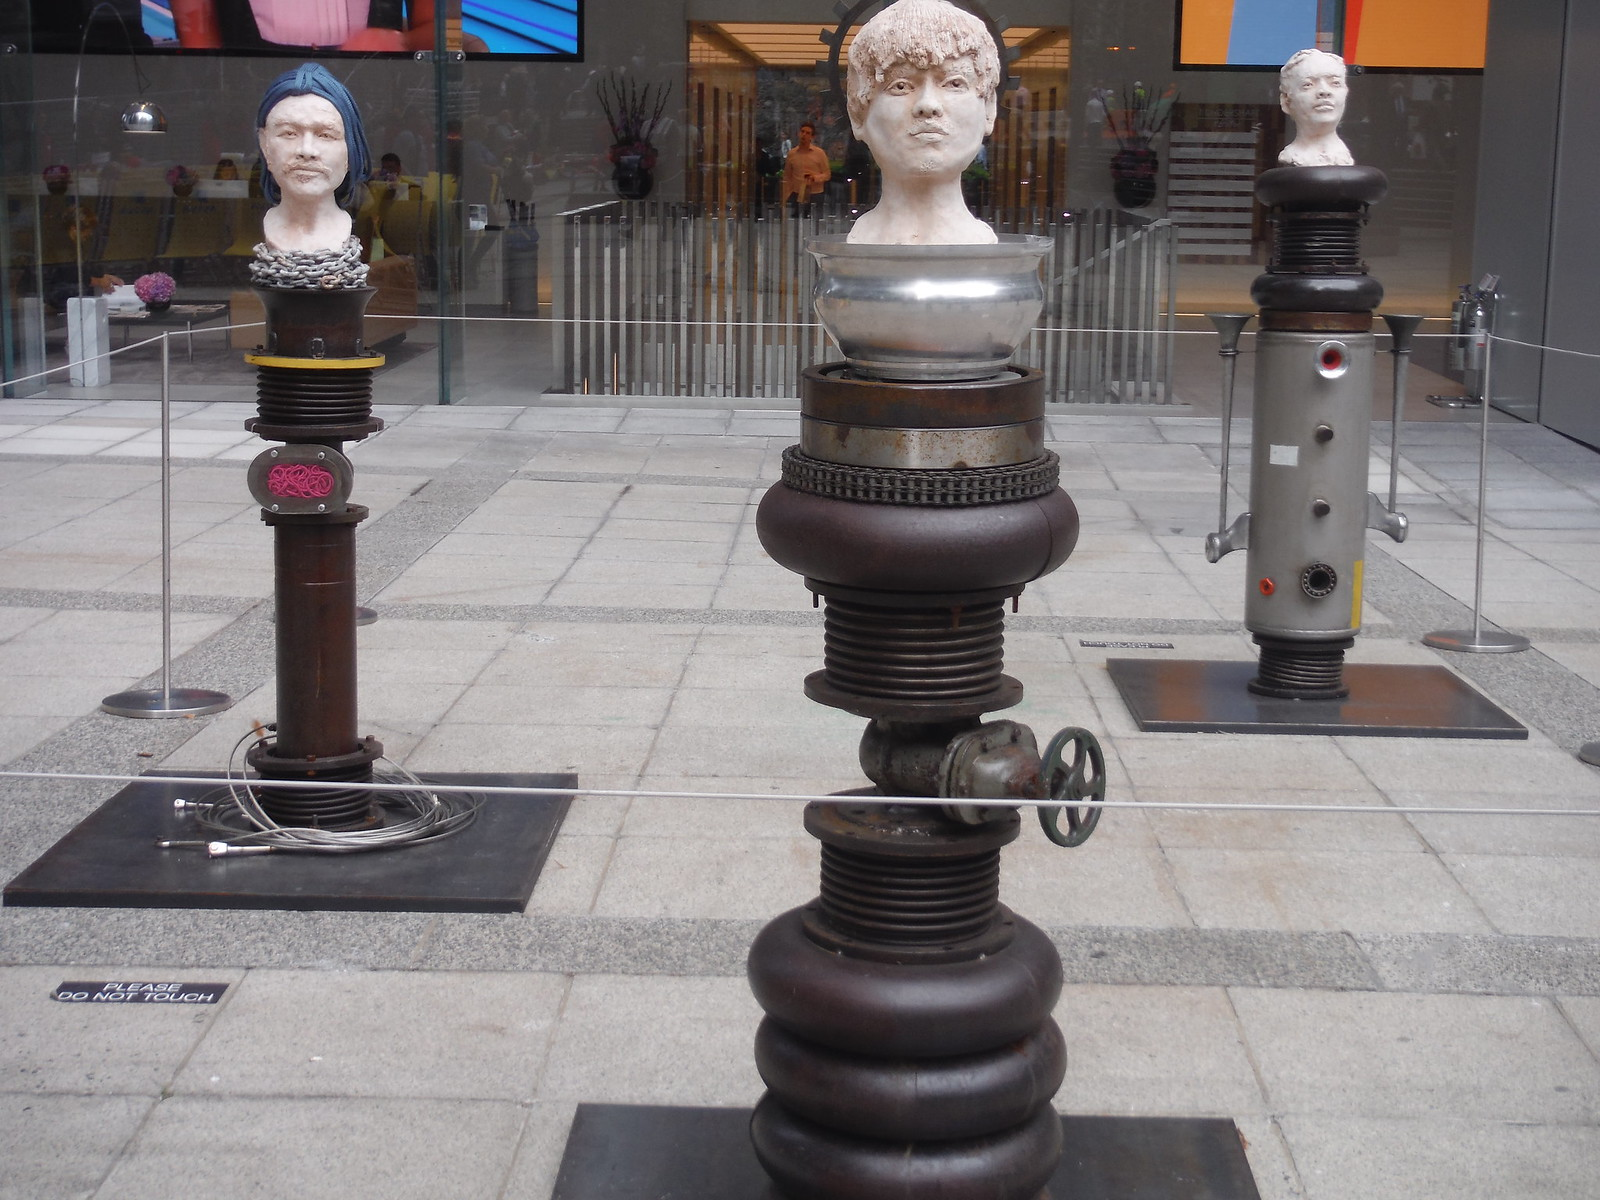 Benedetto Pietromarchi - Of Saints and Sailors SWC Walk Short 24 - Sculpture in the City